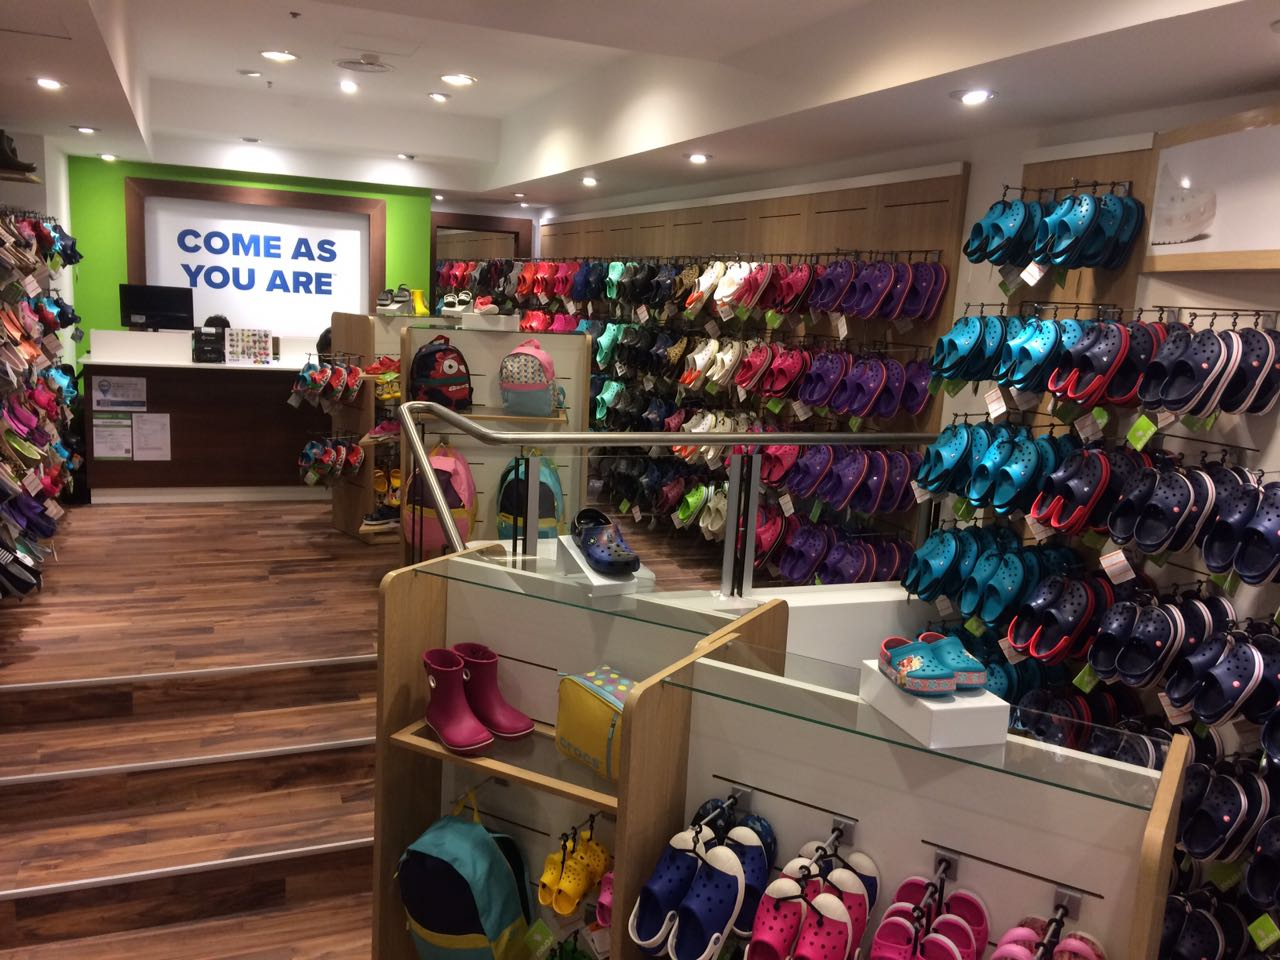 CROCS INAUGURA SU NUEVO LOCAL  EN PATIO OLMOS